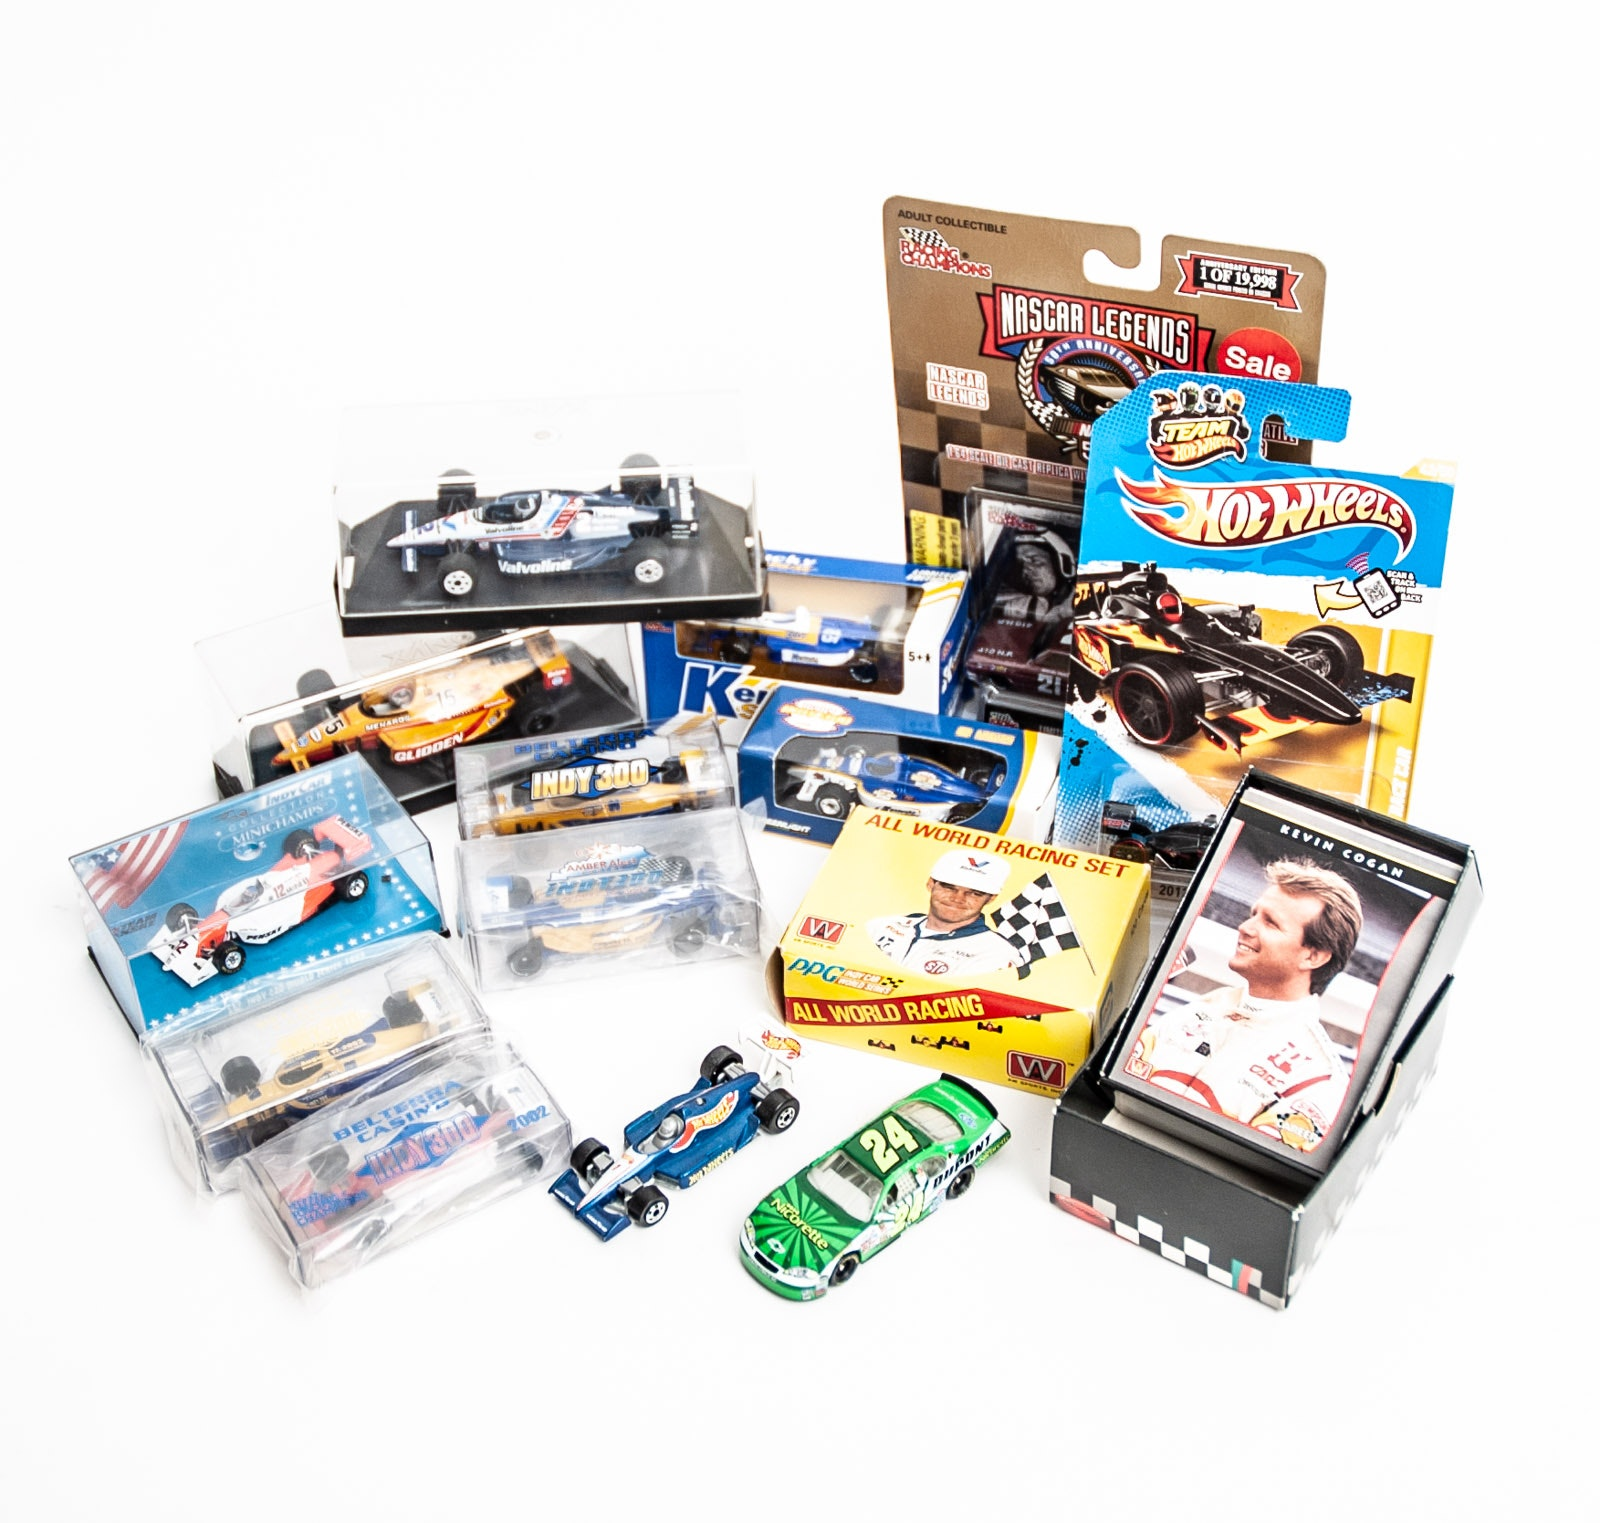 Auto Racing Memorabilia Including Cast Iron Cars and Trading Cards